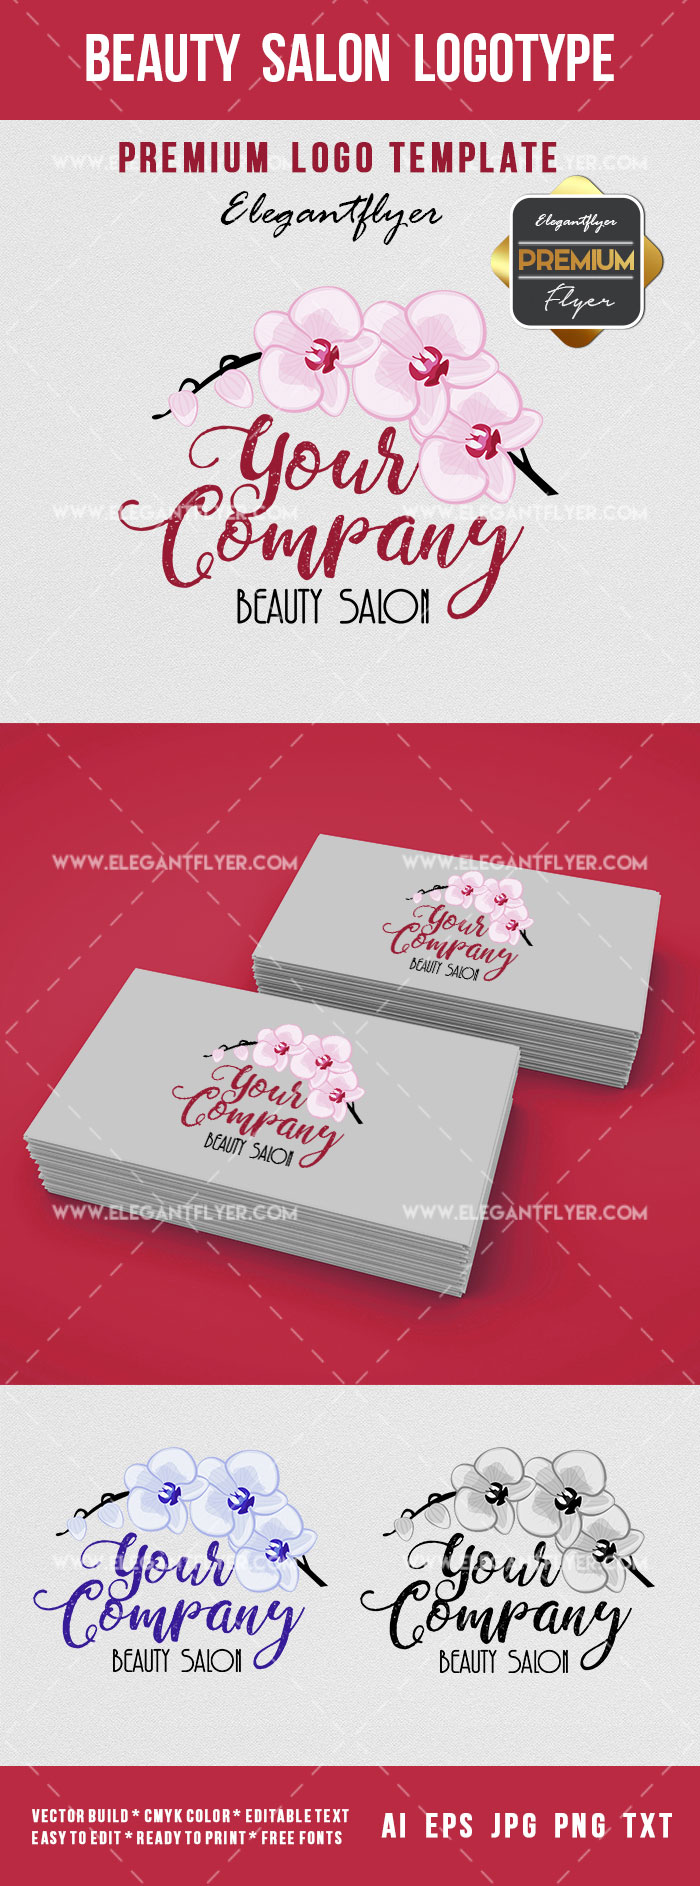 Beauty Salon Logotype – Premium Logo Template